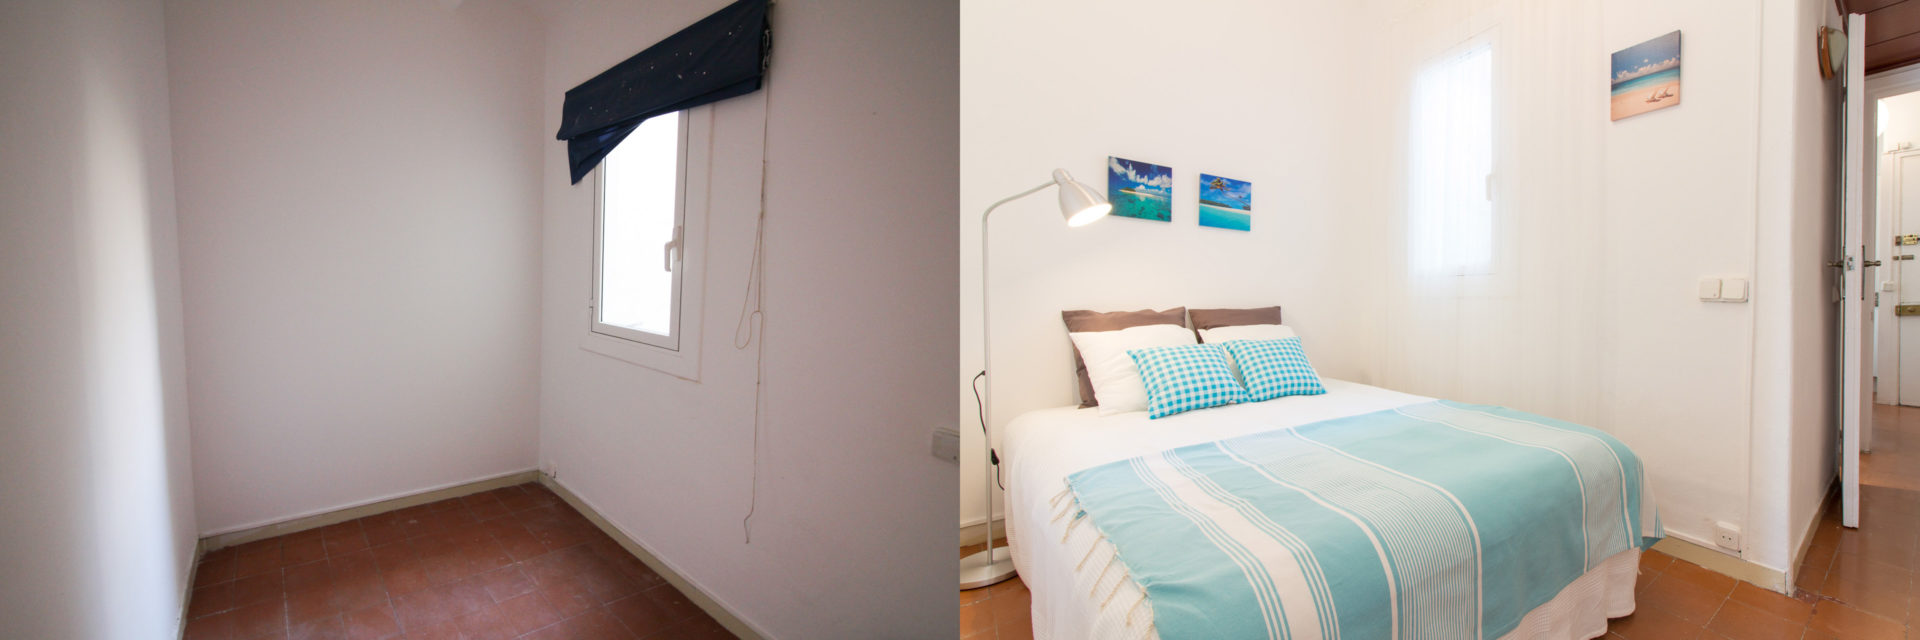 proyecto home staging barcelona dormitorio cama inflable